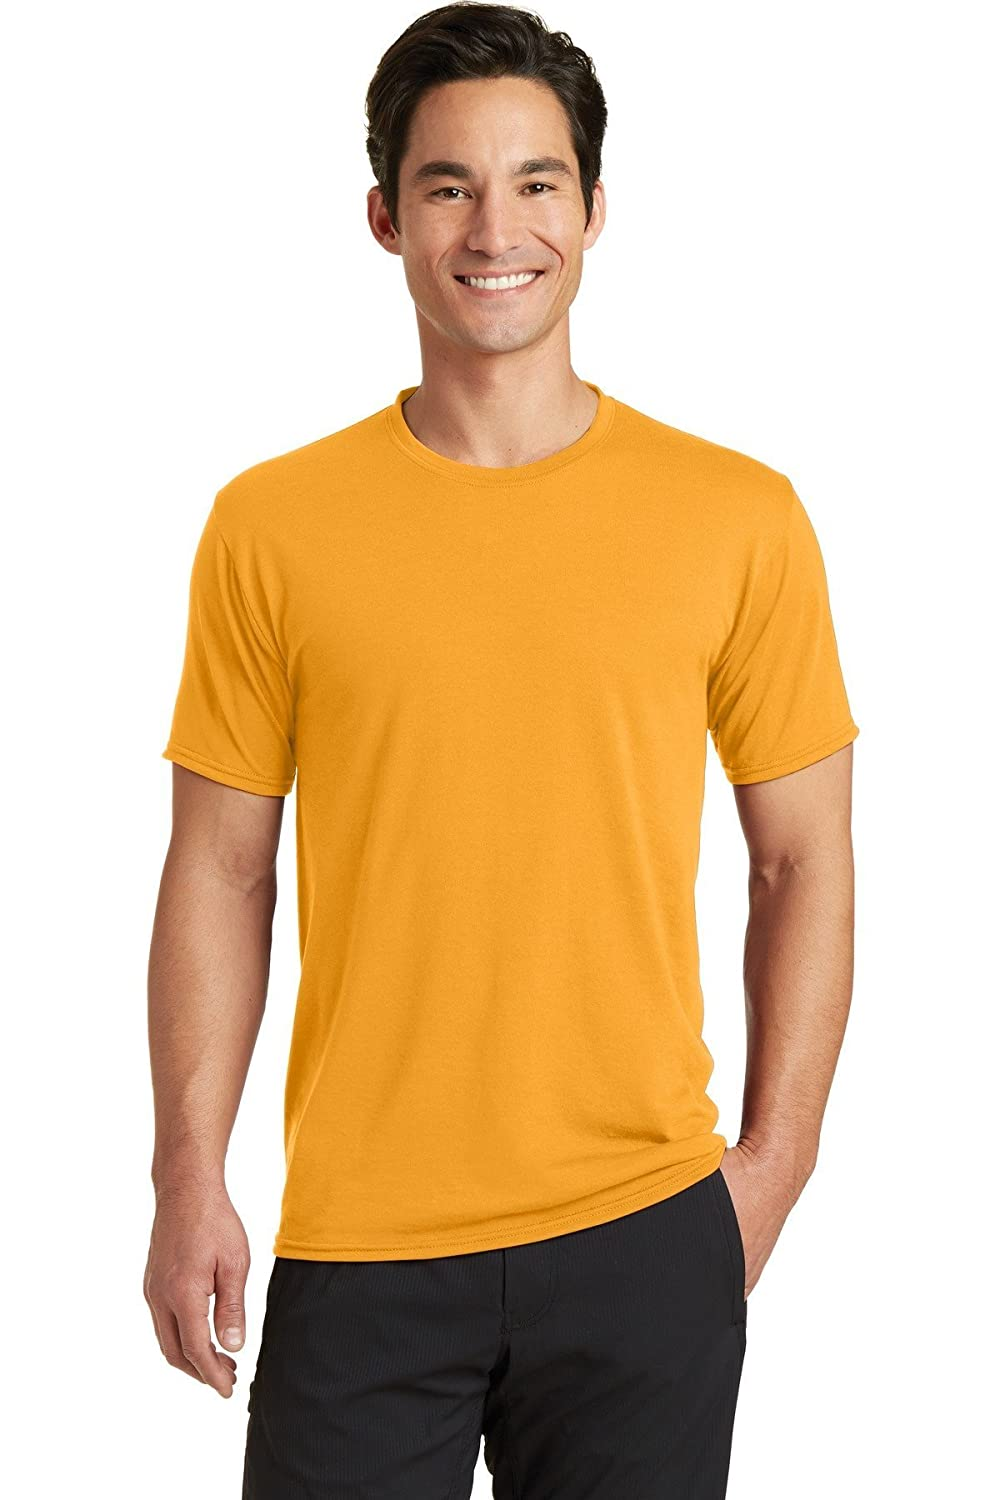 Port & Company PC381 Blended Performance Tee